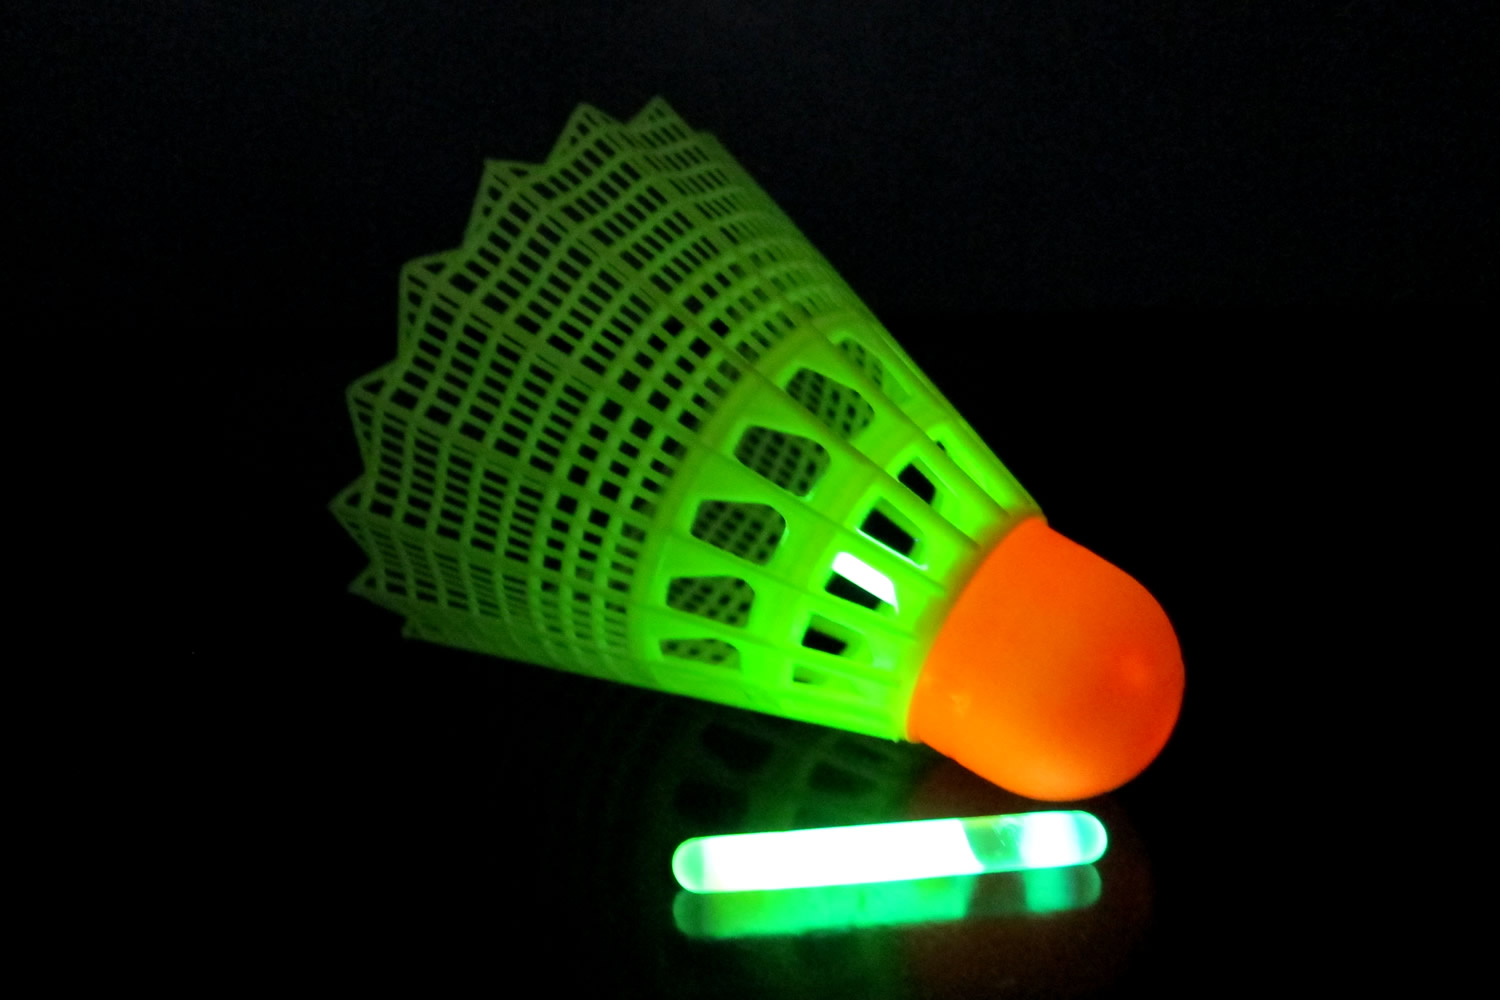 Add To The Nighttime Fun On Camping Trips Or In Your Own Backyard With These Glow Dark Toys And Games